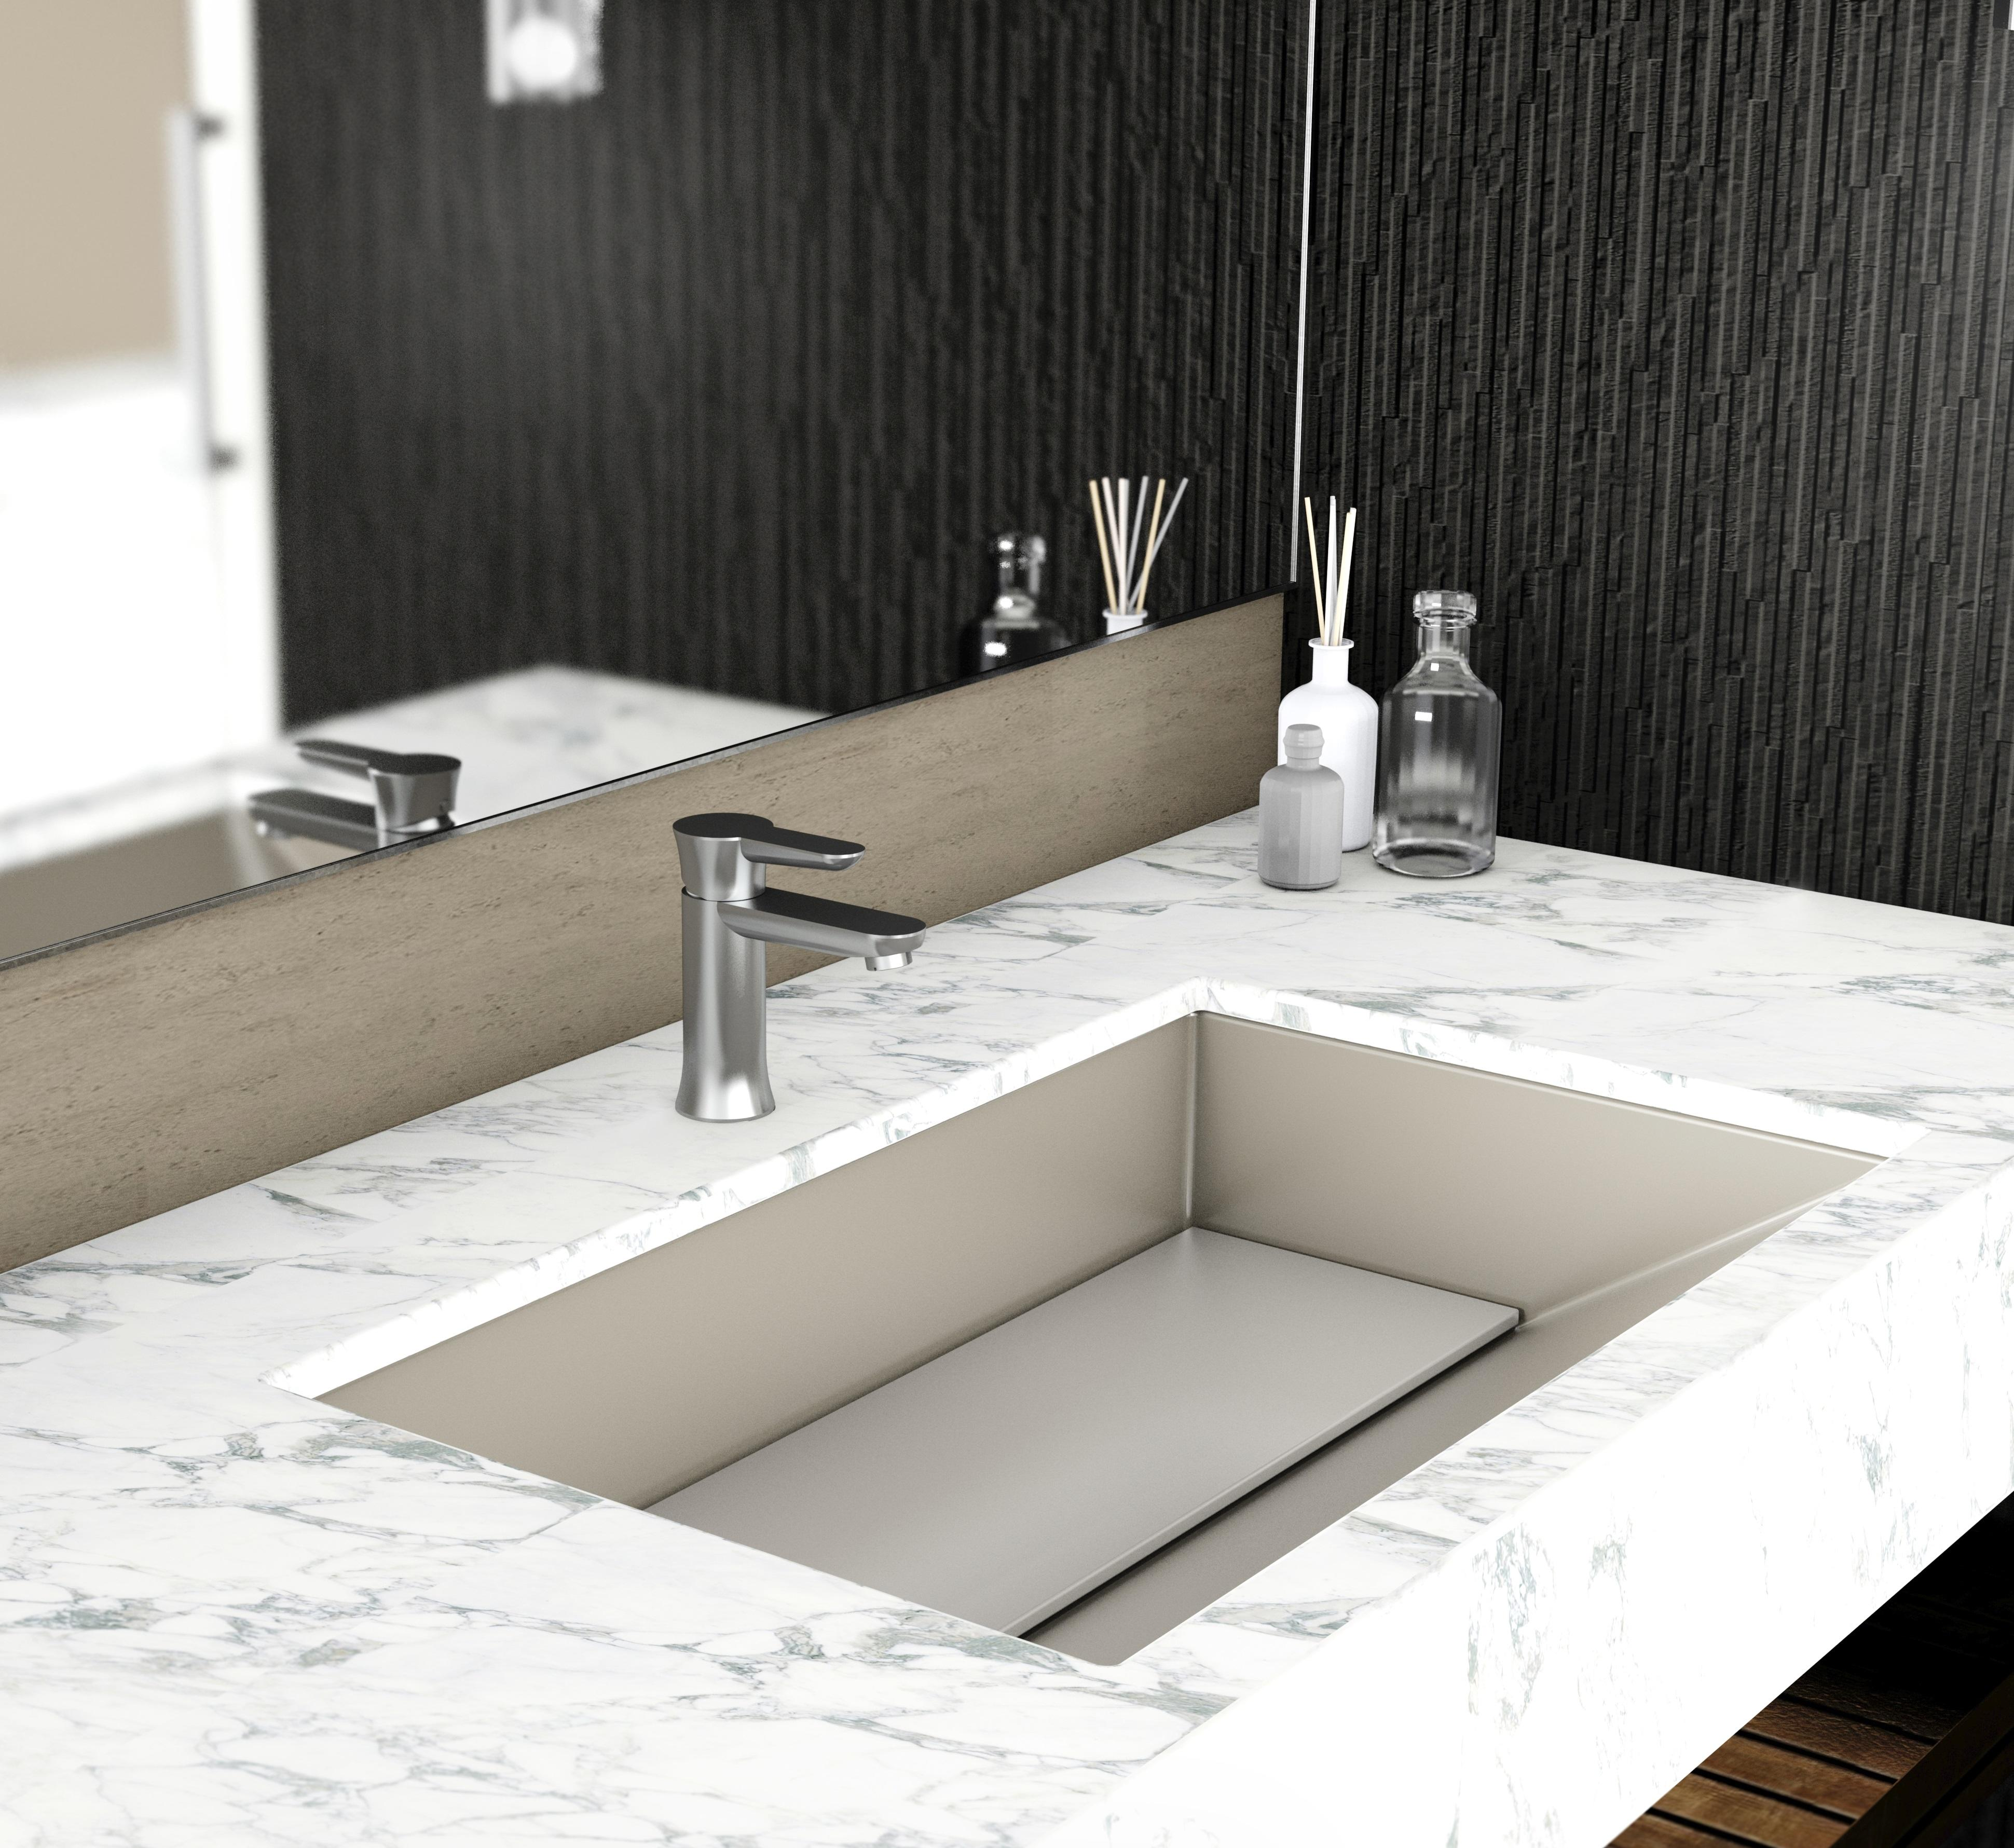 basin_stainless_steel_316_tap_bathroom_cloakroom_kitchen_luxury_outdoor_modern_high_quality_kent_uk